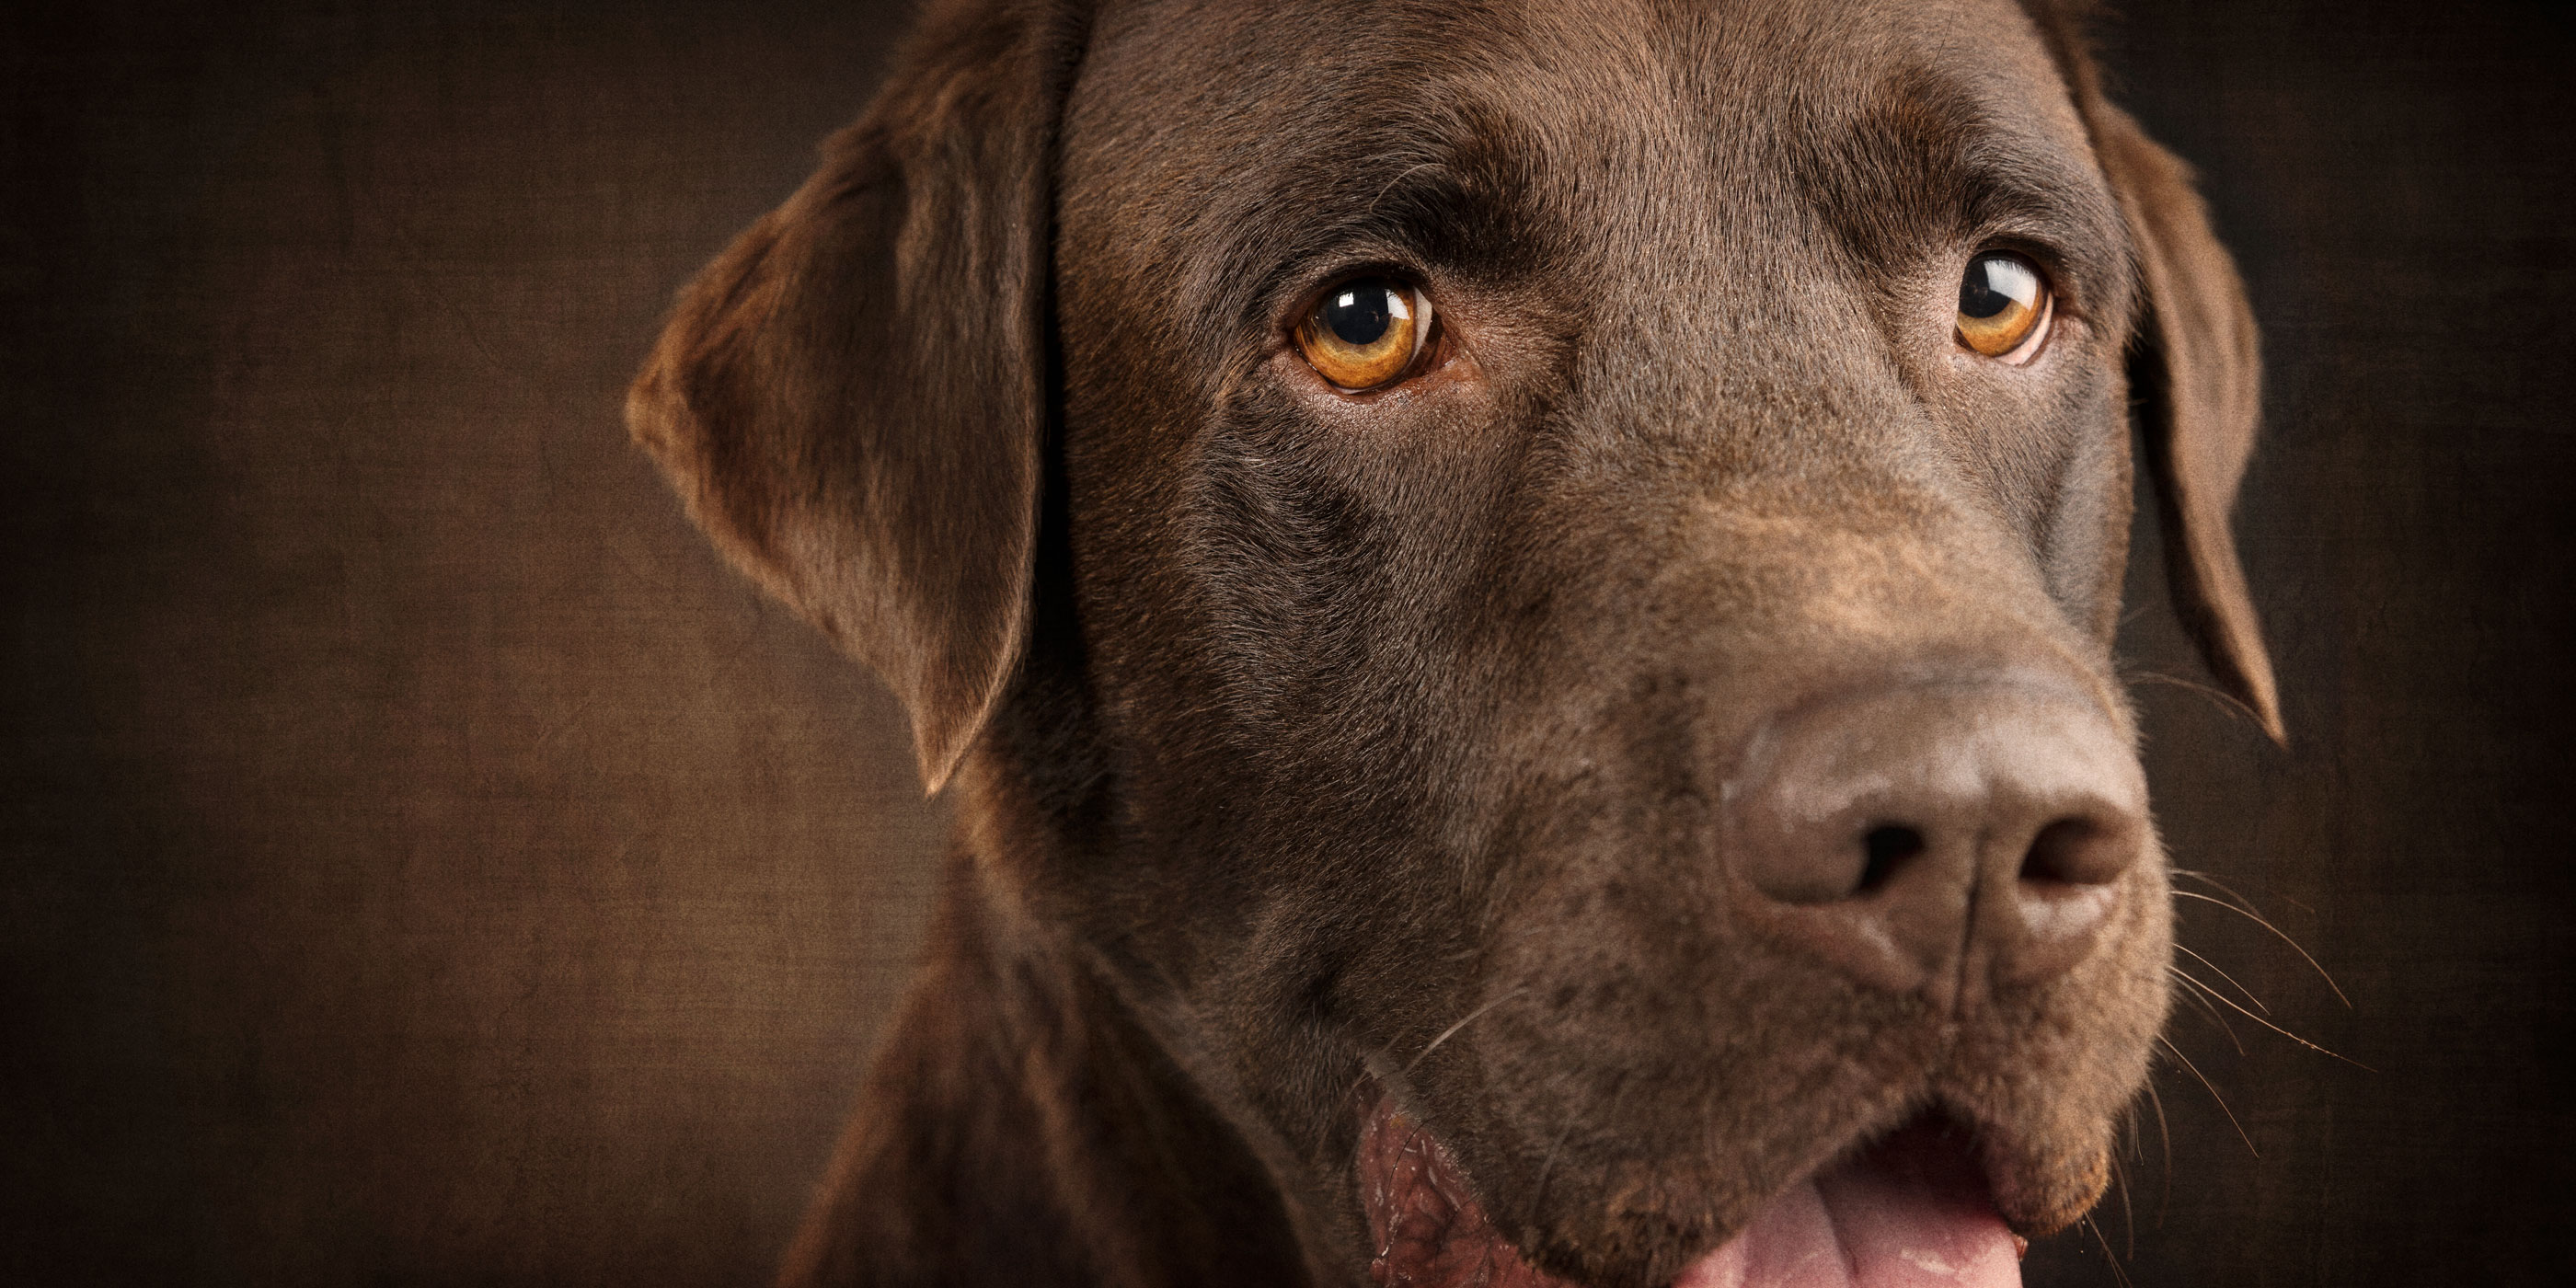 smiling sweetly full face chocolate labrador